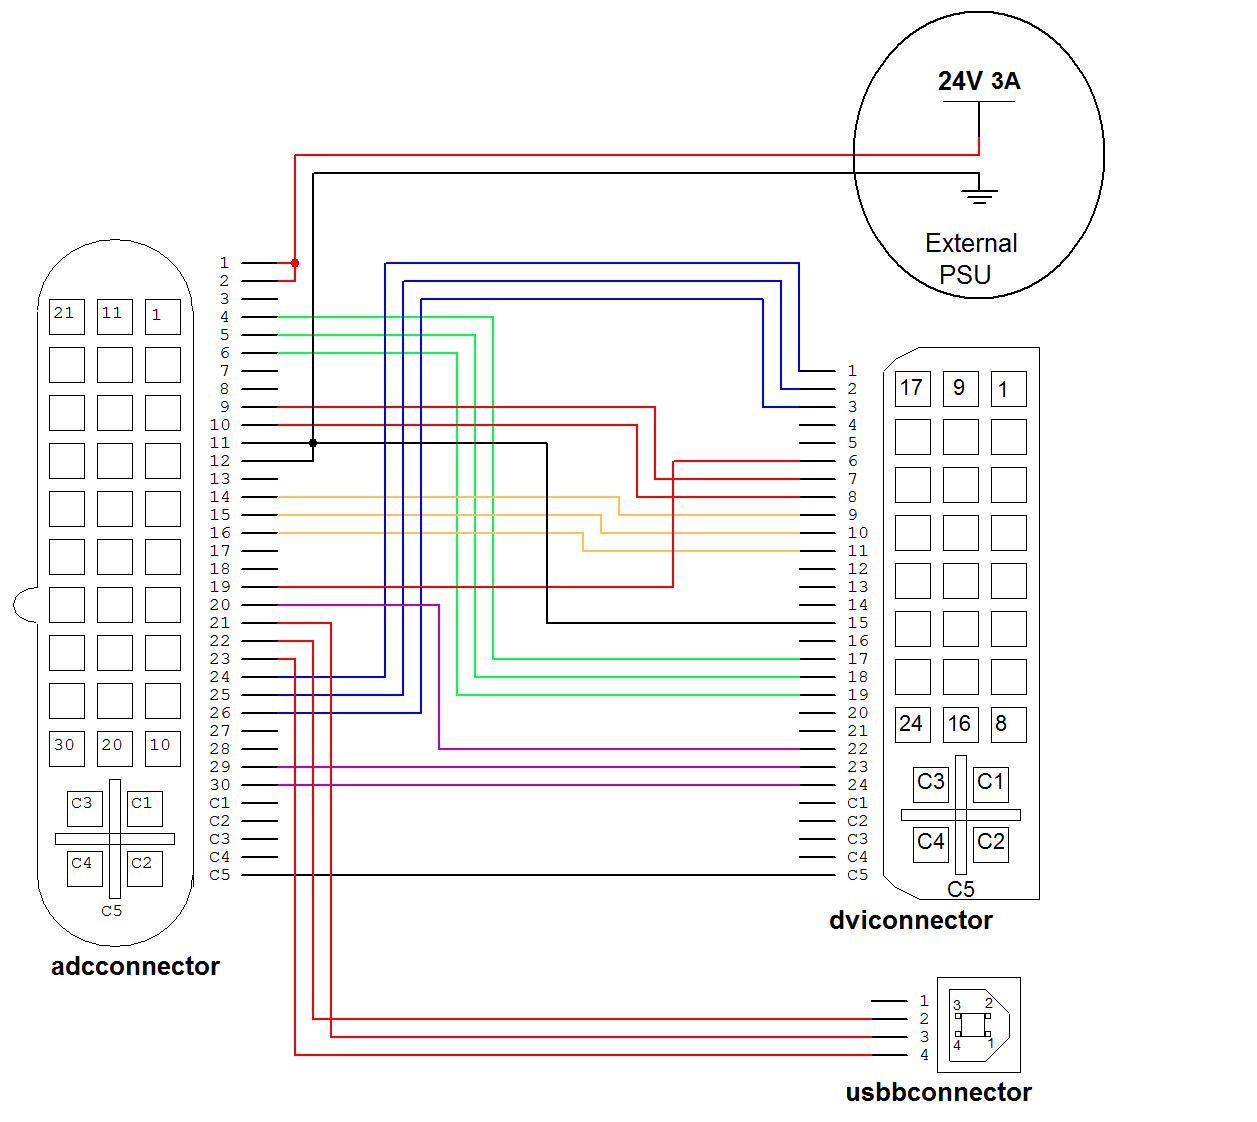 dvi to vga cable diagram wiring schematic diagram DVI-I Pinout Diagram dvi d wiring diagram wiring diagram data oreo dvi cable pinout dvi pinout wiring wiring diagram